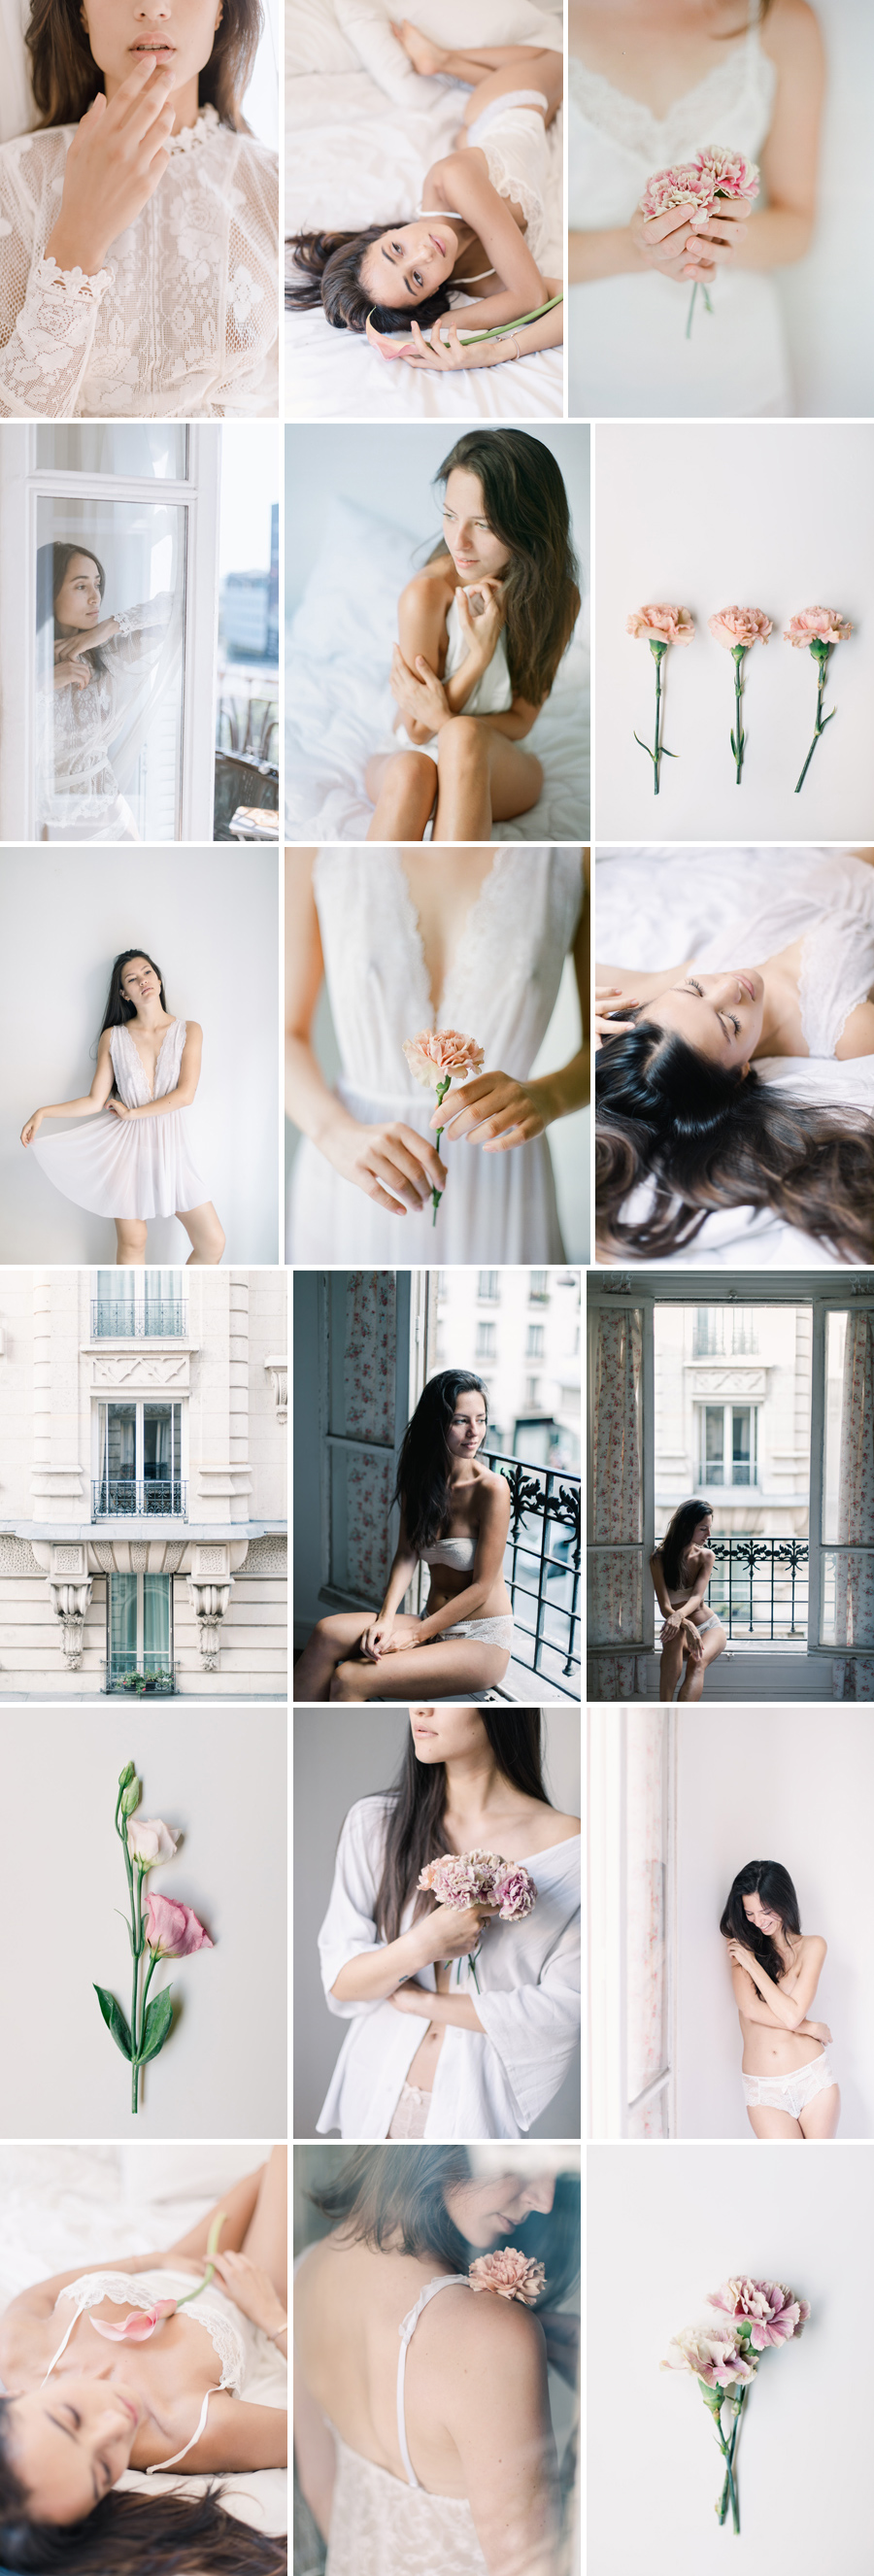 boudoir photographe photographer photography paris monaco